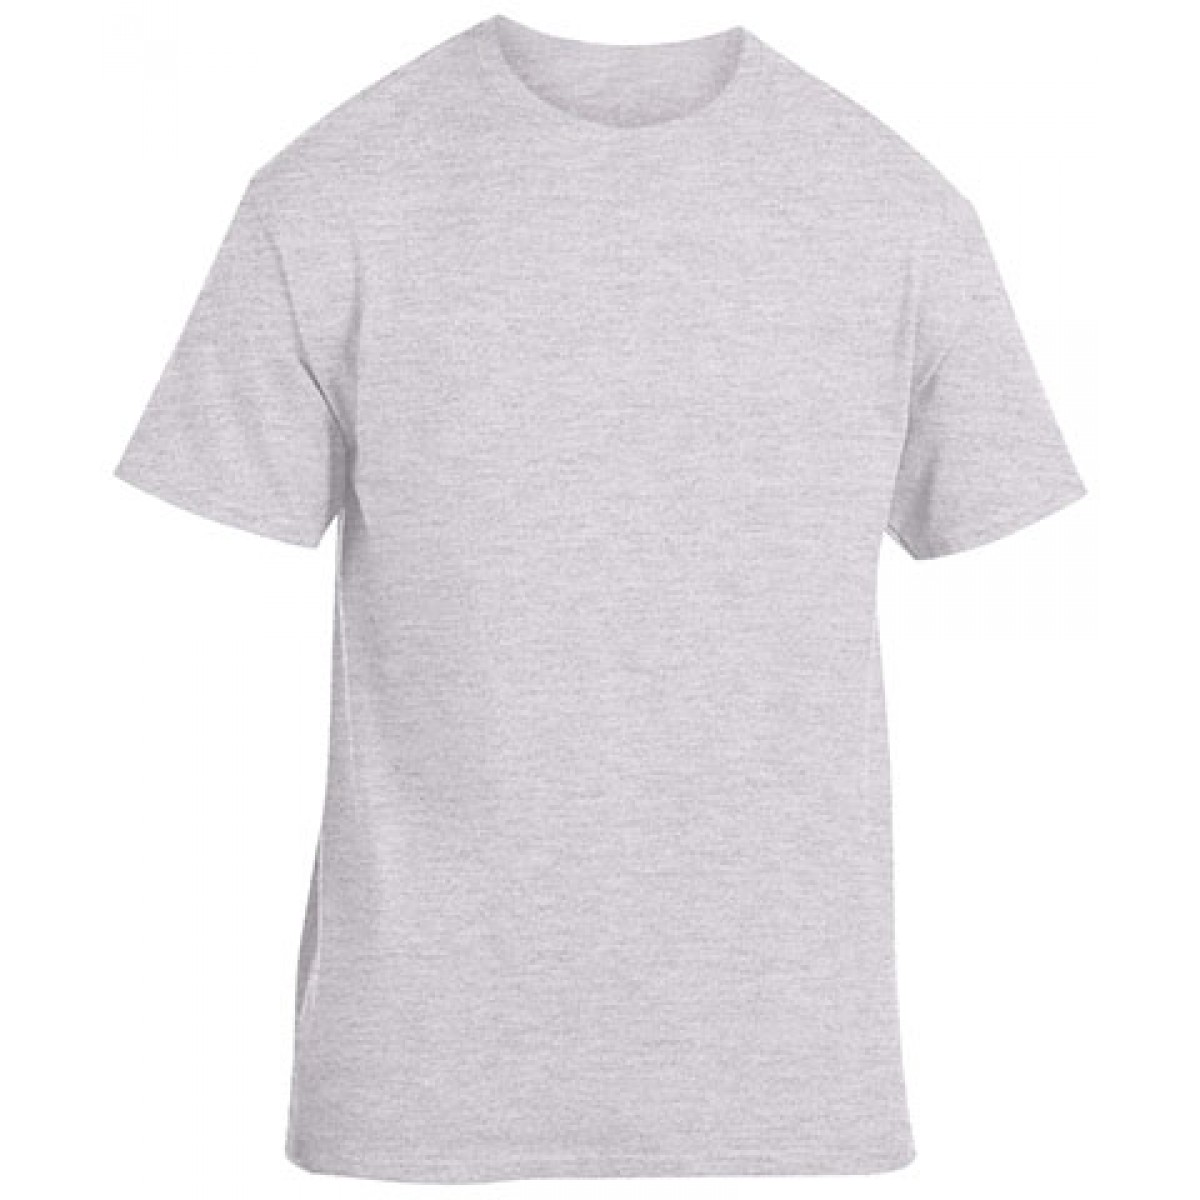 Heavy Cotton Activewear T-Shirt-Sports Grey-M